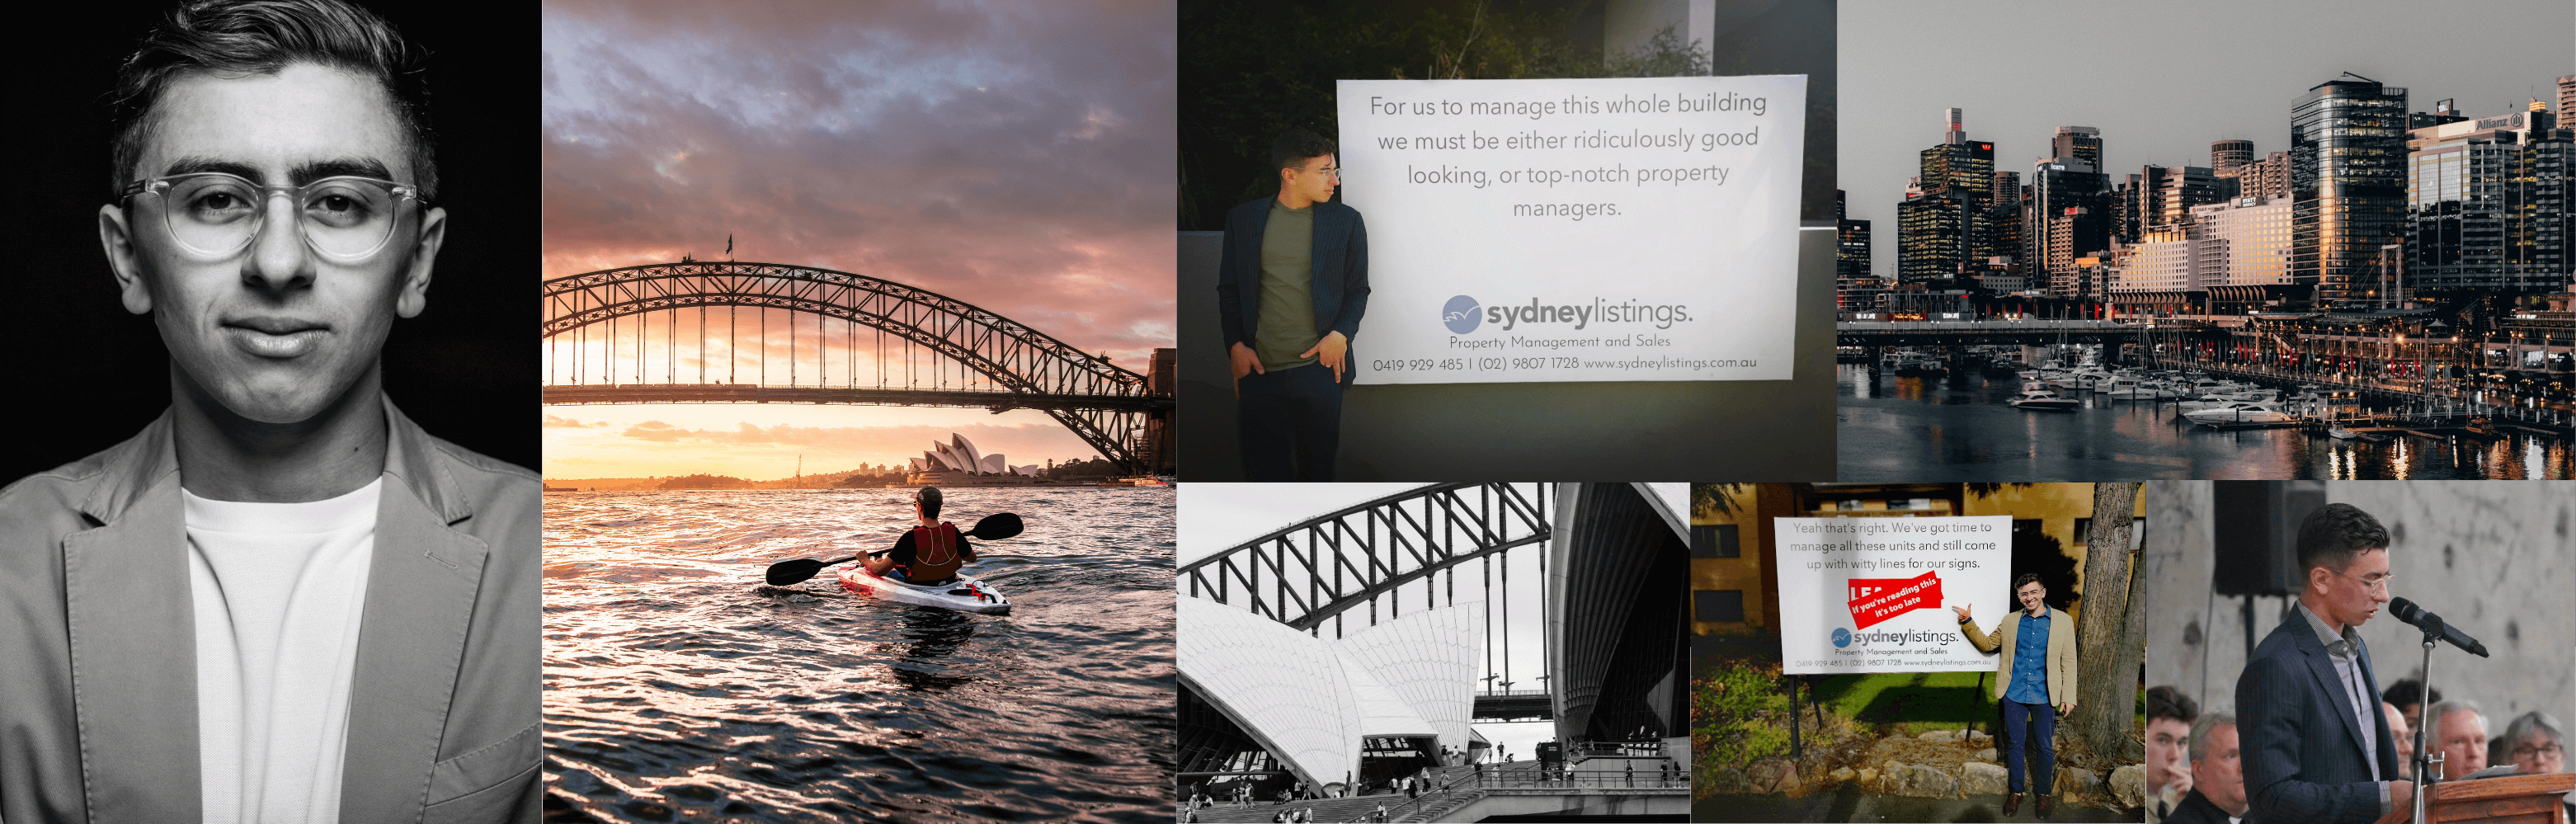 Sydney Listings Property Management, Signboards, and pictures of Sydney our place of work